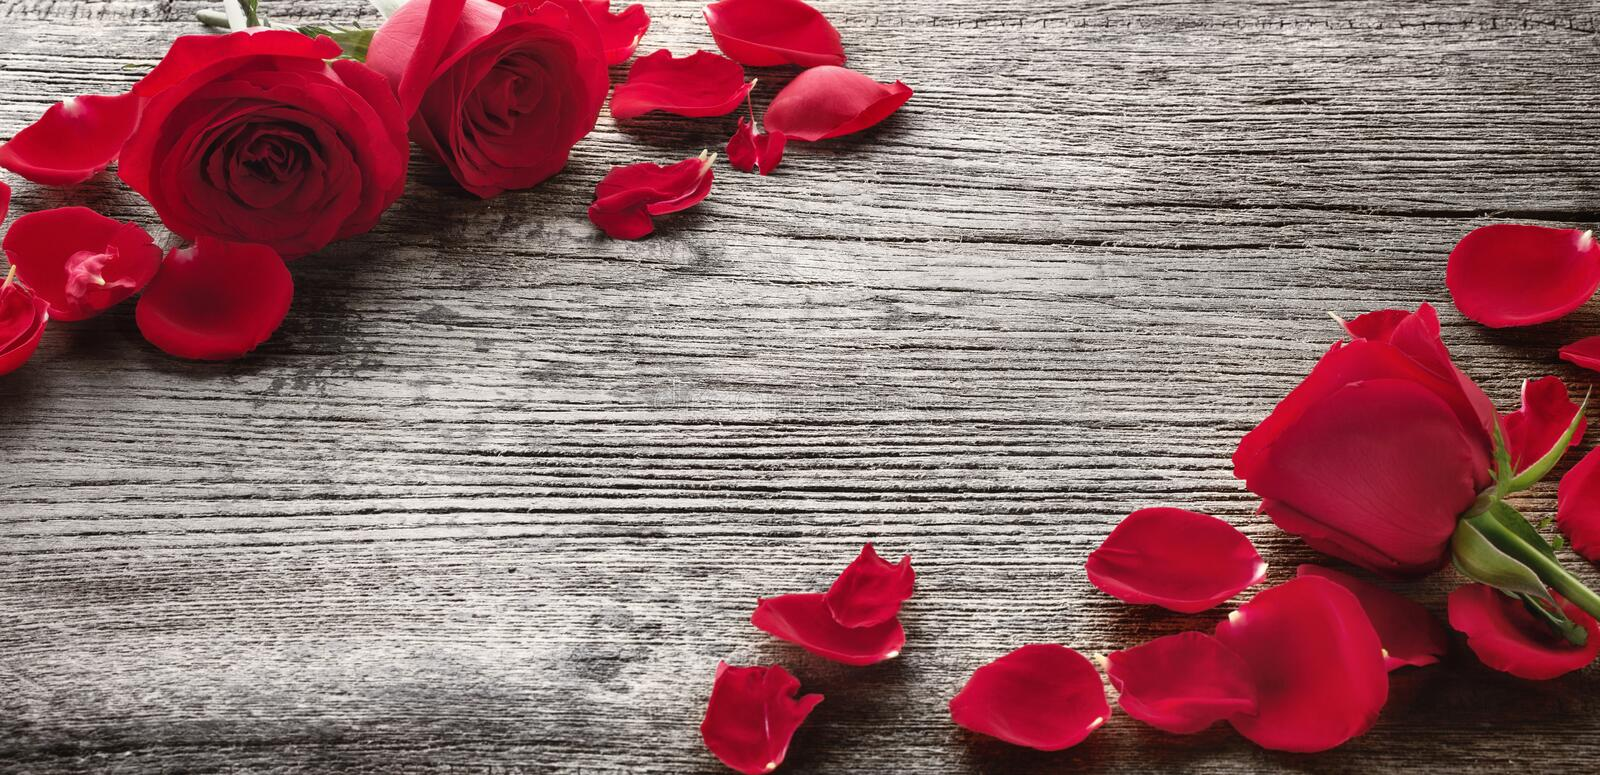 Roses on wooden board stock image